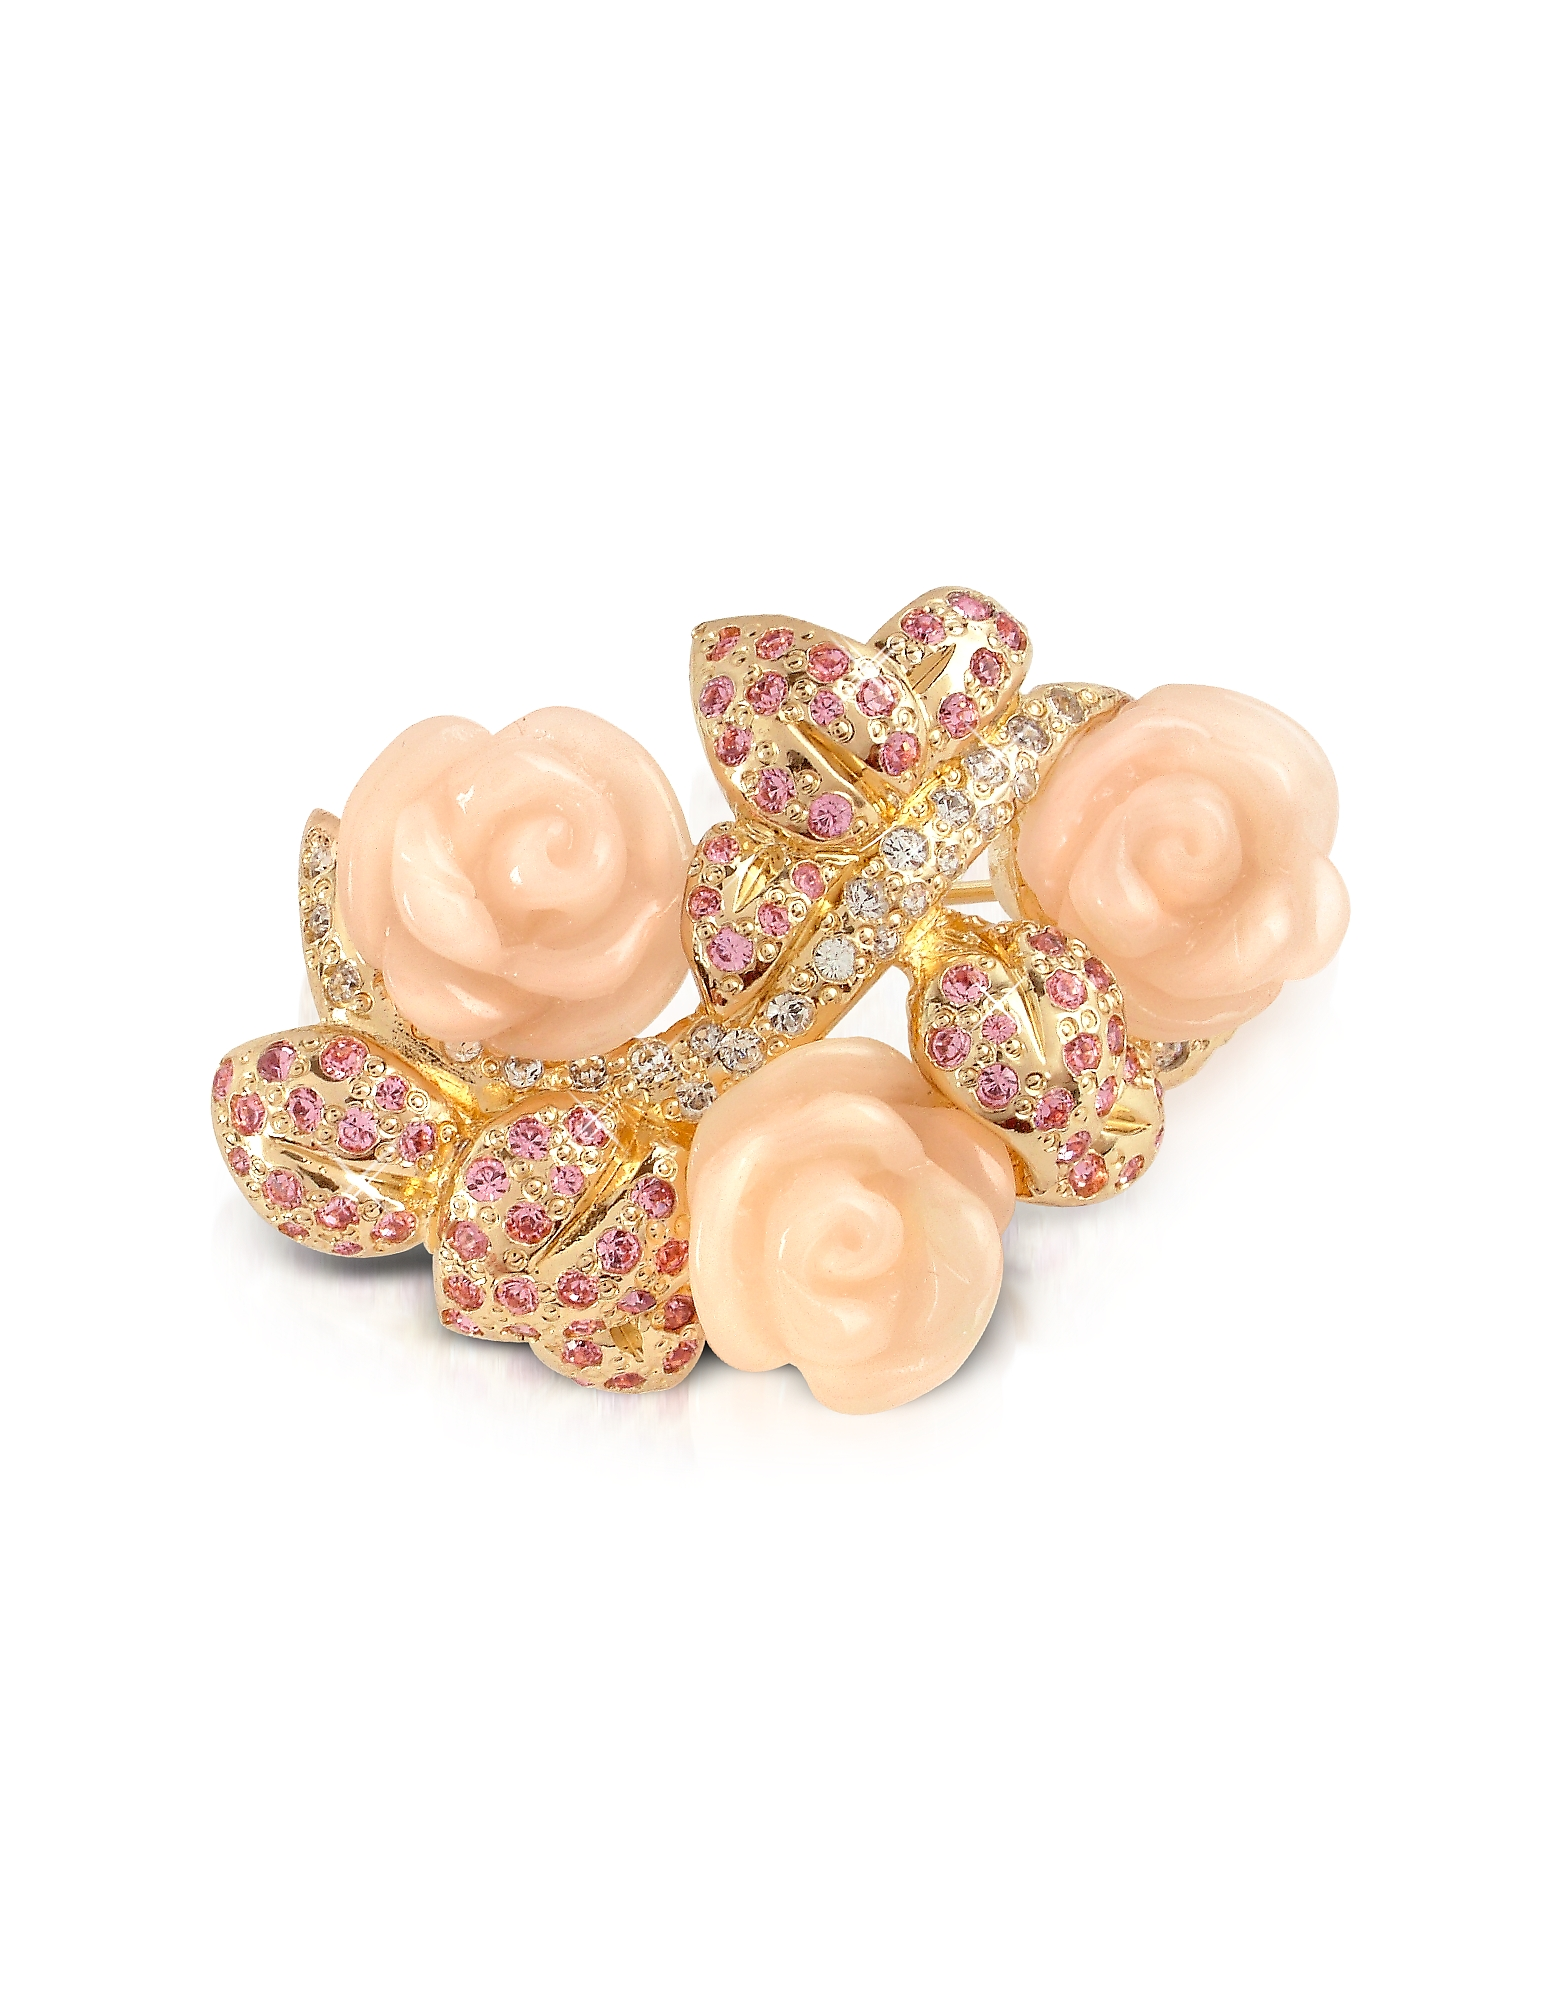 Pink Roses Brooch, Gold